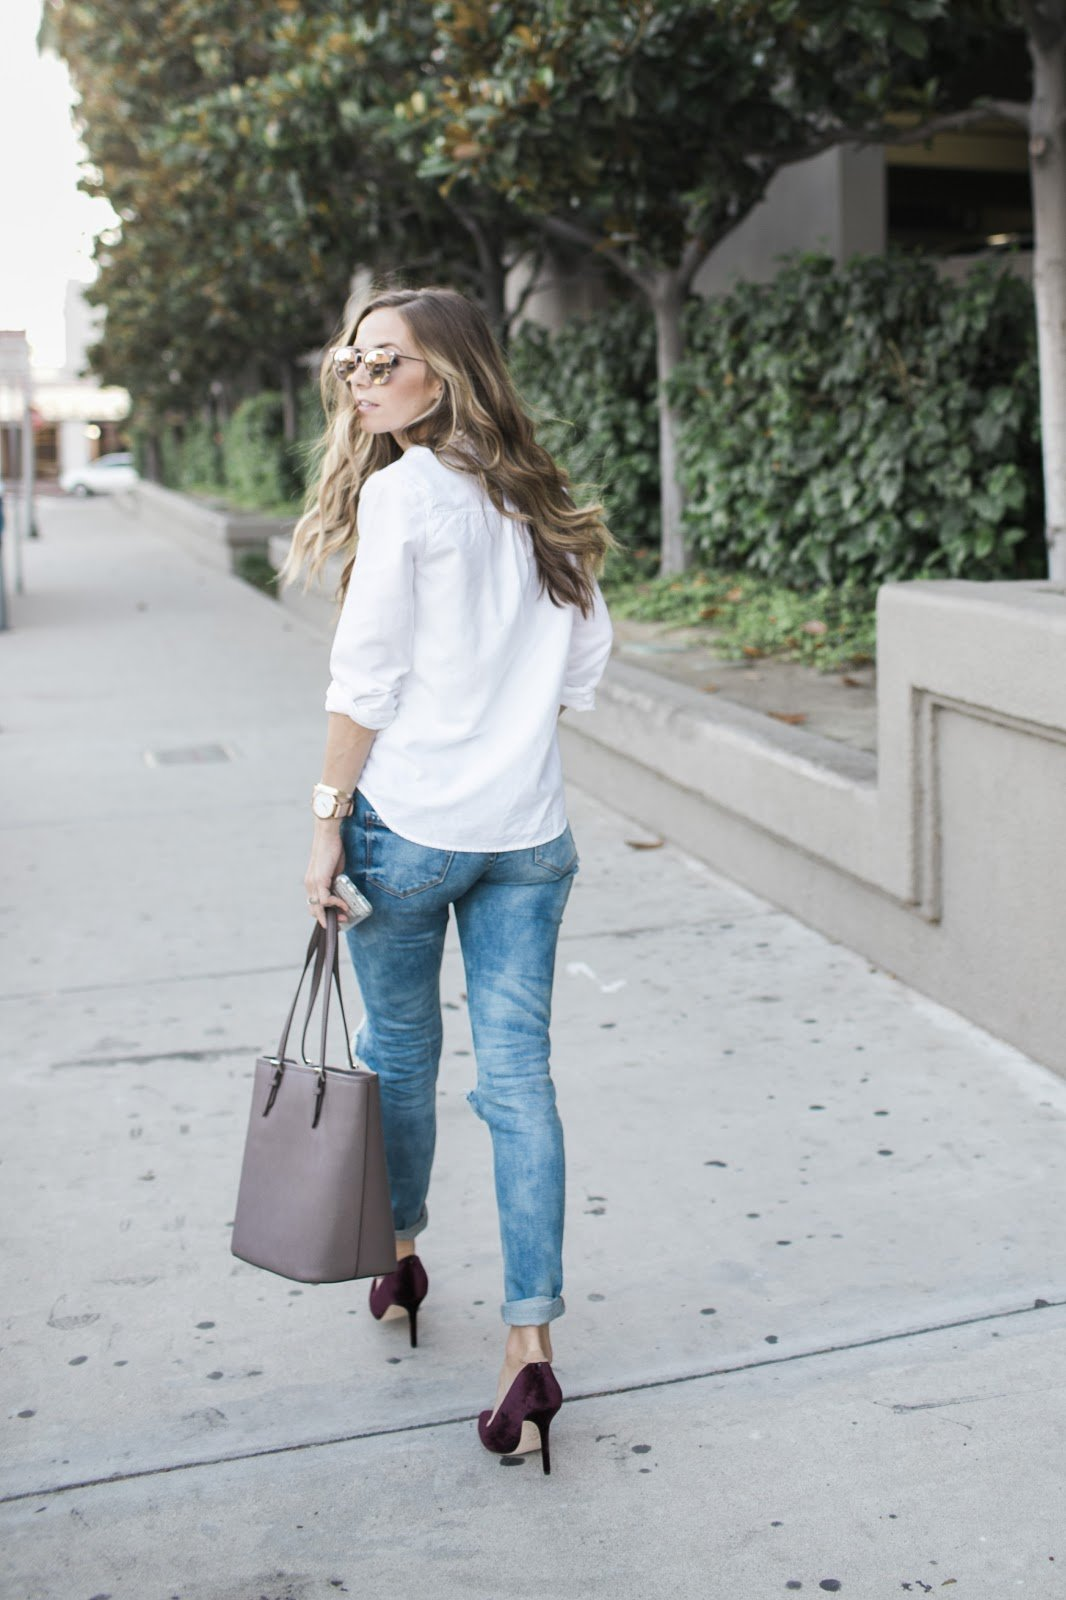 pair your boyfriend jeans with some lux pieces like a crisp white shirt and velvet pumps